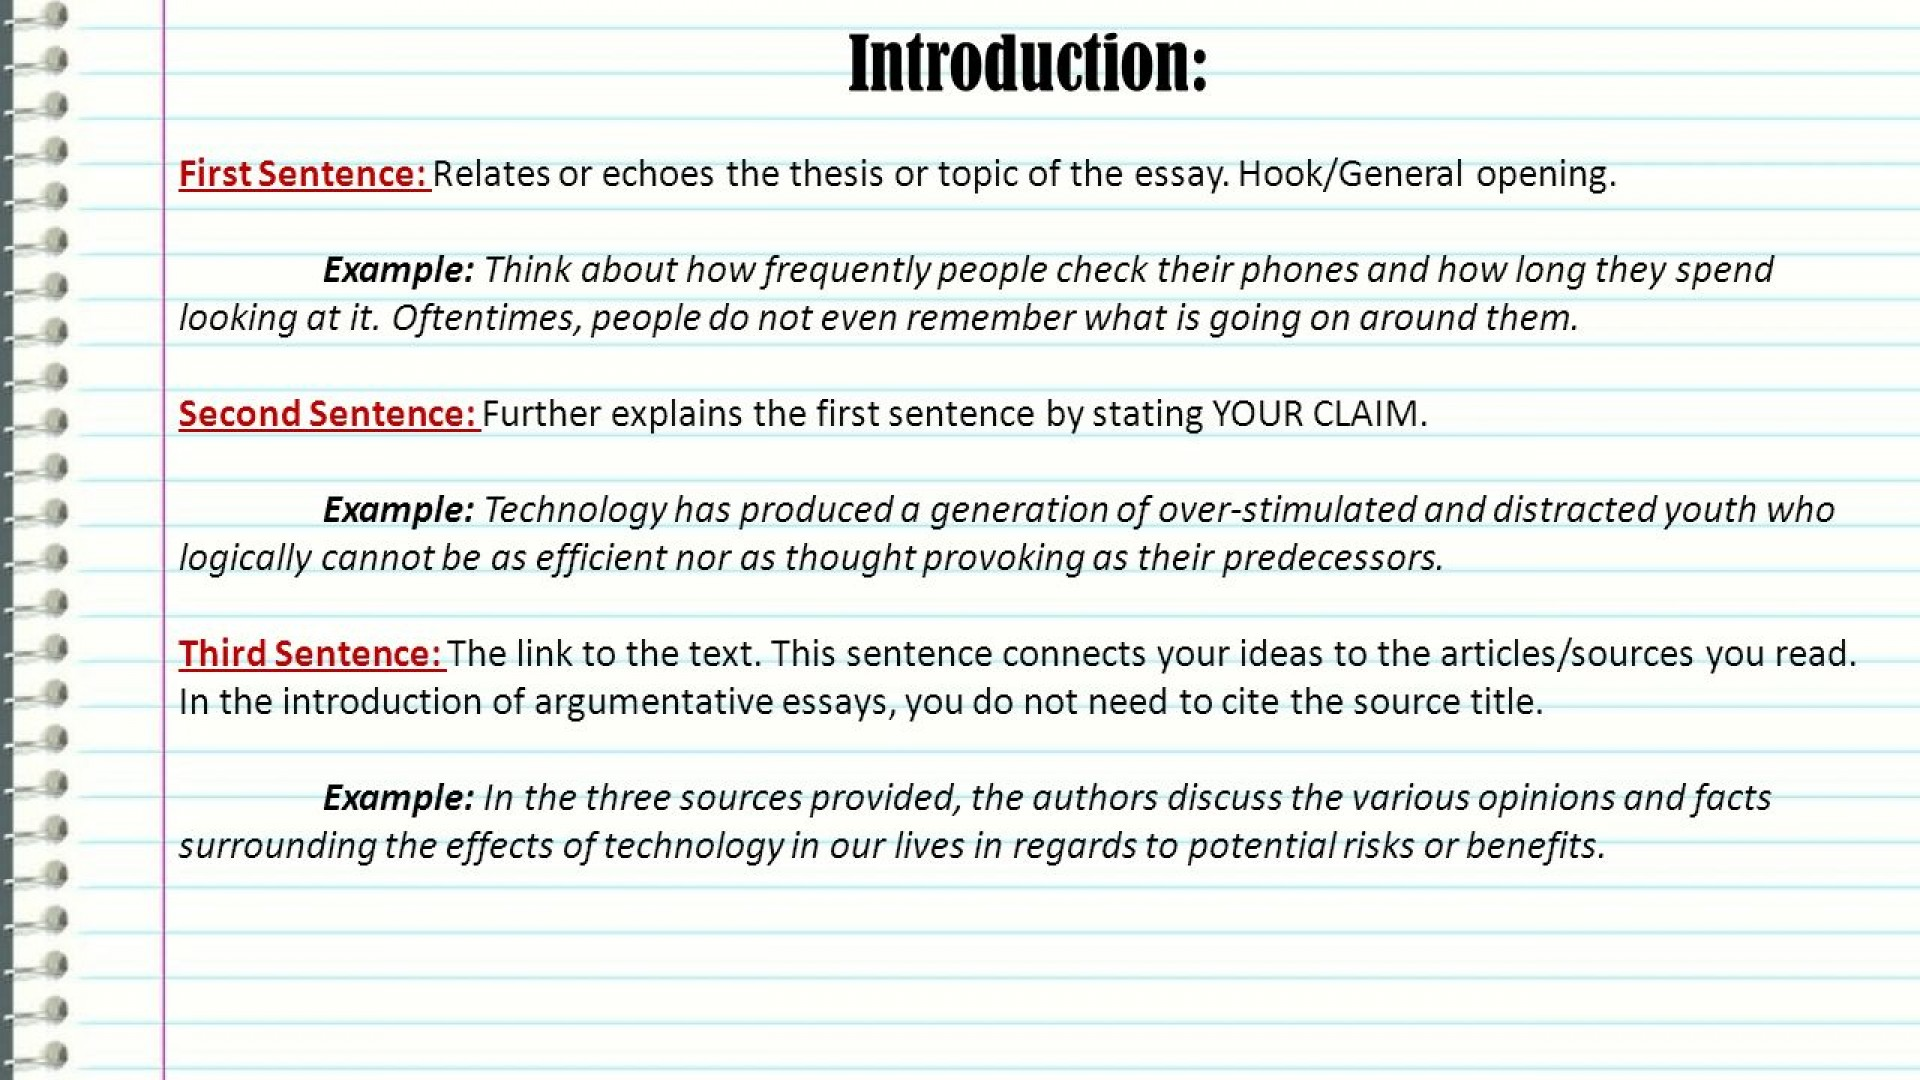 024 What Is Claim In An Argumentative Essay Fsa Writing Essays English Language Arts Ppt Video How To Write Fo For Imposing A Apex Effective Brainly 1920